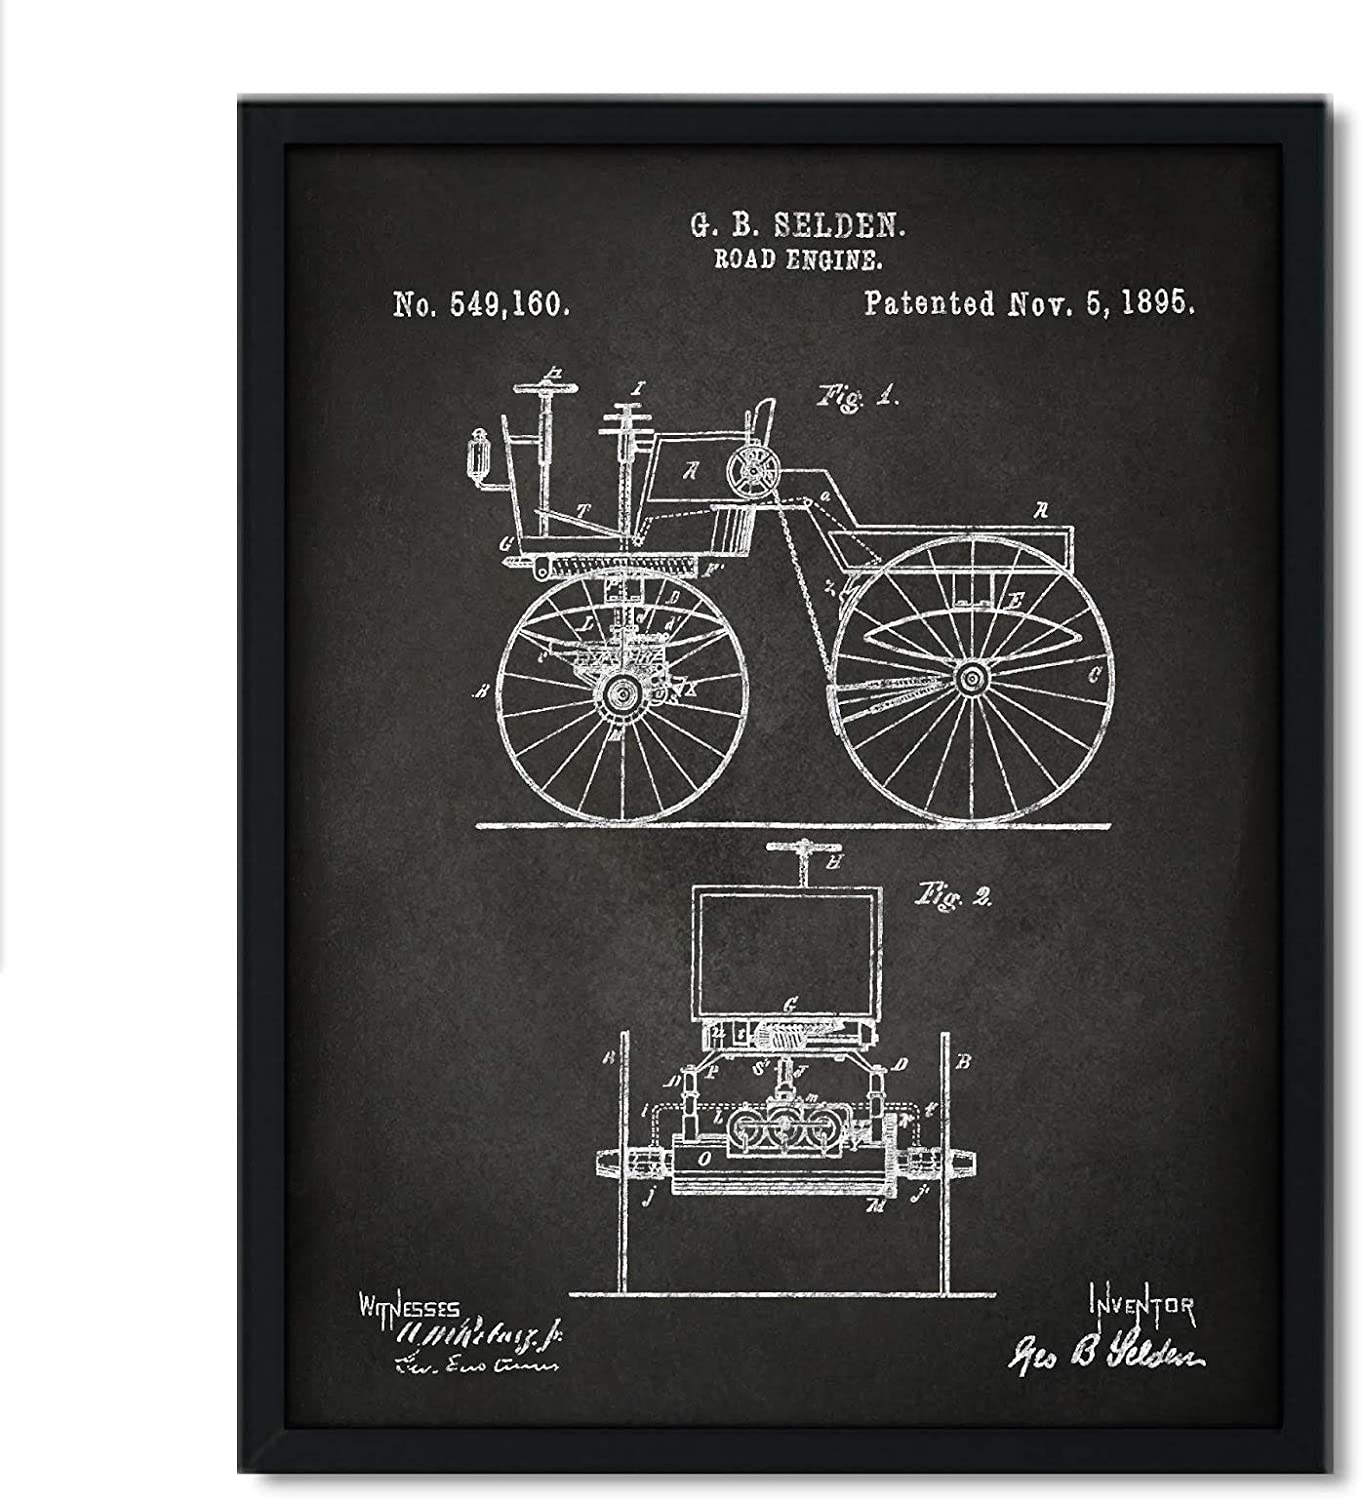 Andaz Press Chalkboard Patent Print Wall Art Decor Poster, 8.5x11-inch, Planes, Trains, Automobiles, Motor Buggy 1895 Patent 1 Poster, 1-Pack, Antique Car, Automobile Poster, Car Poster, Office